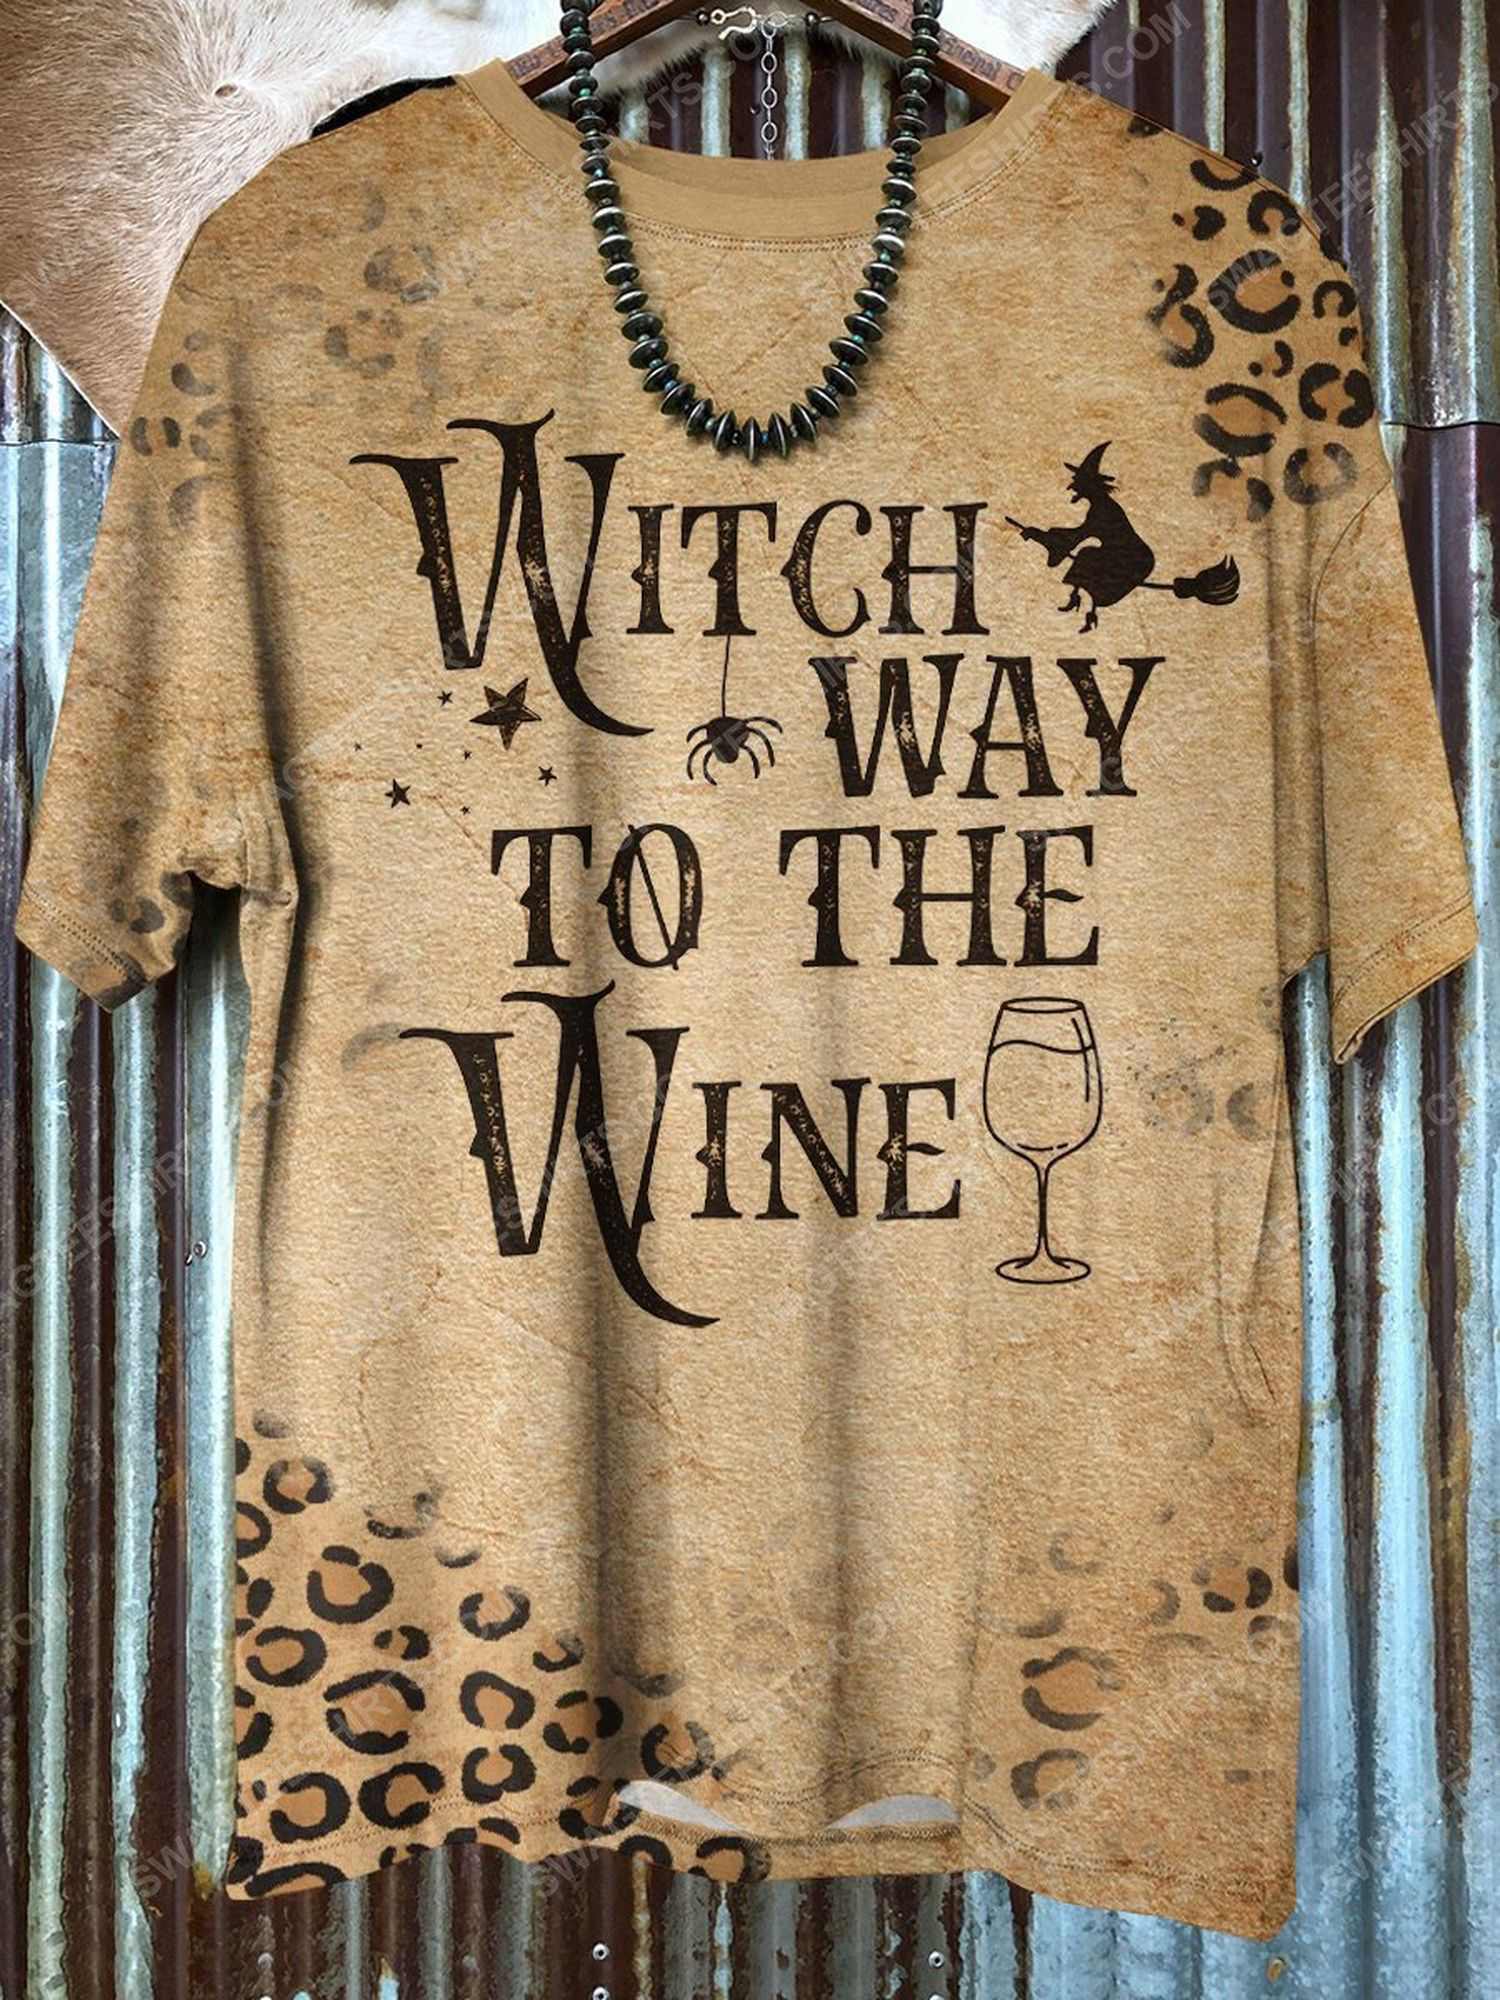 Halloween witch way to the wine leopard shirt 1 - Copy (2)